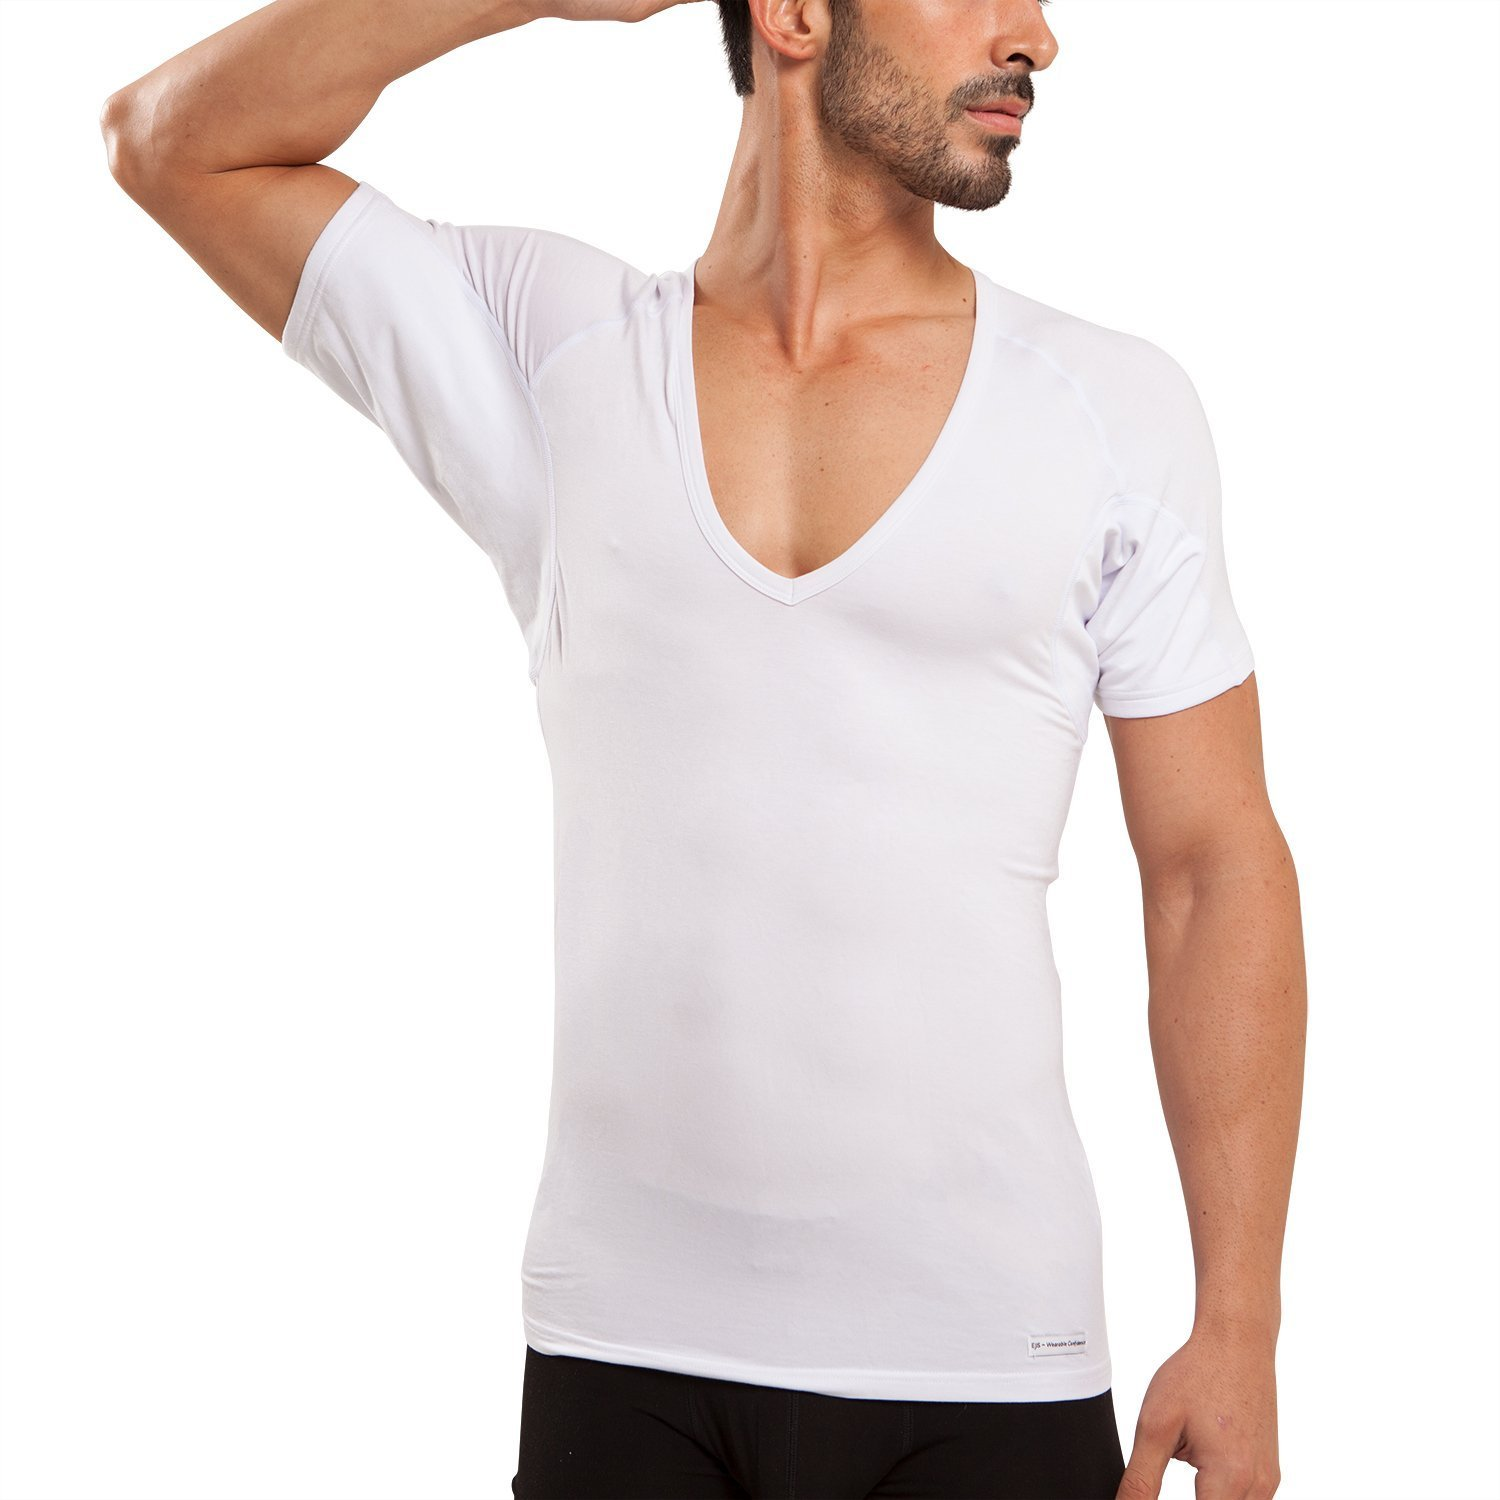 Ejis Sweatproof Undershirts Men Deep V Micro Modal Odor Fighting Silver (Large, White)